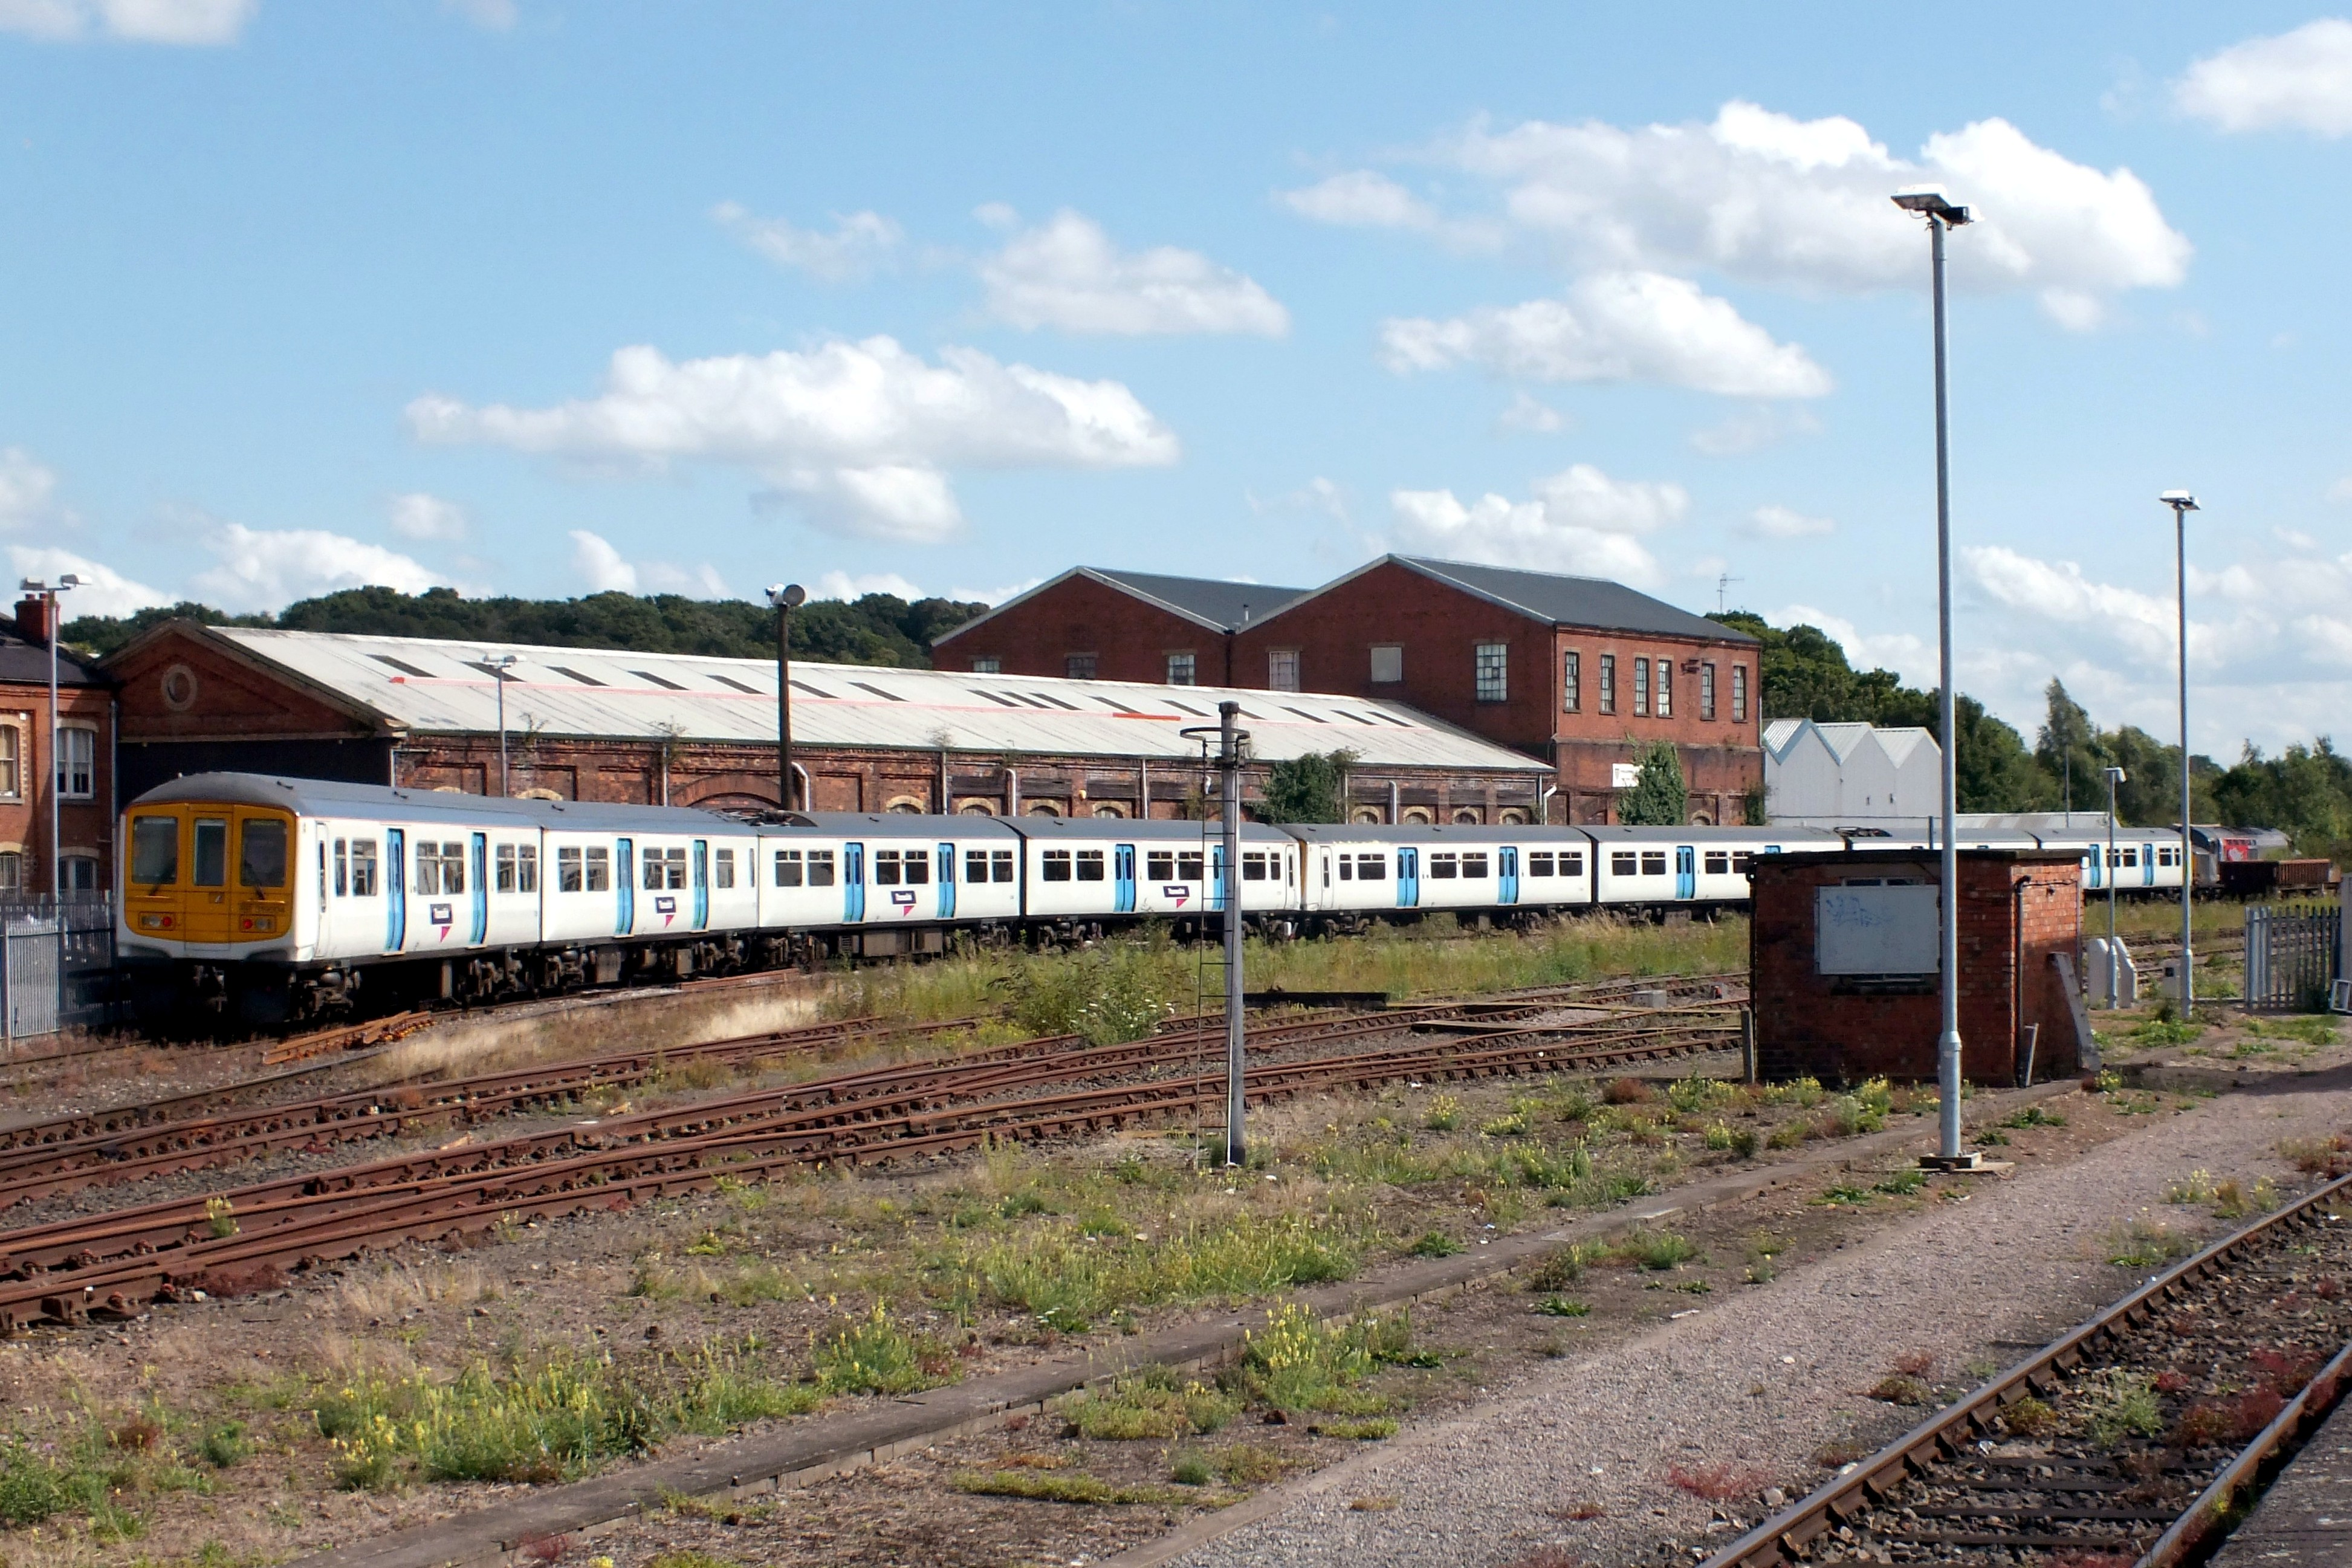 17 August 2017 Shrub Hill 018.jpg